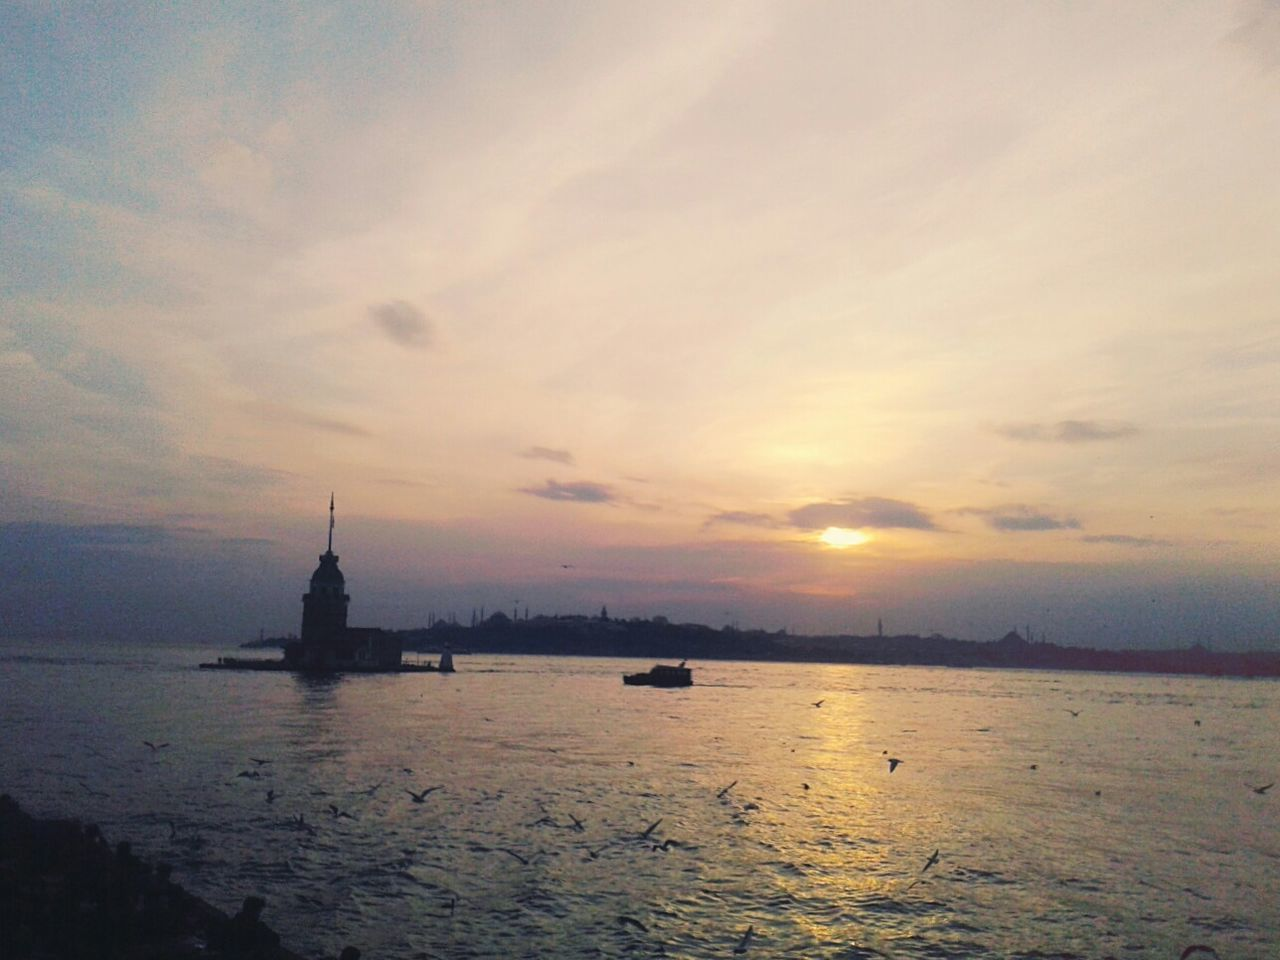 Sunset Sea Water Sky No People Travel Destinations City Cloud - Sky Outdoors Beach Nature Maiden Tower Tower Seagulls